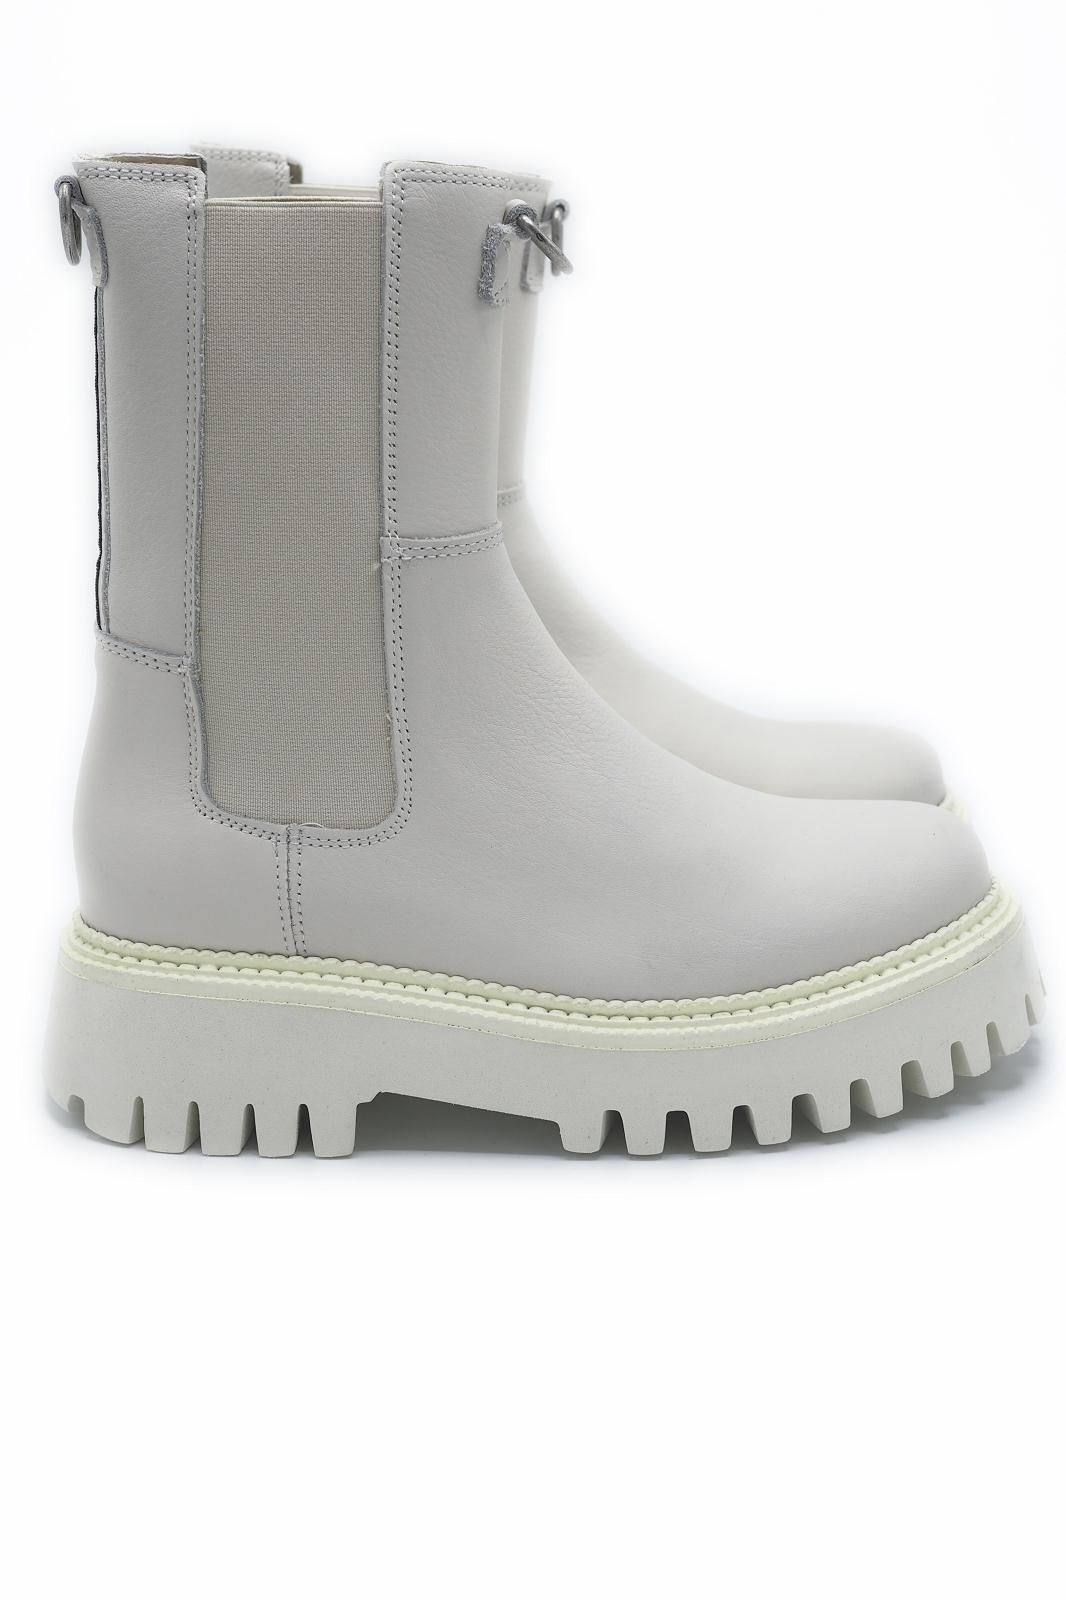 Bronx boots Blanc femmes (BX-Double elastiques - 47268 Boots 2 élastiques cuir ) - Marine | Much more than shoes